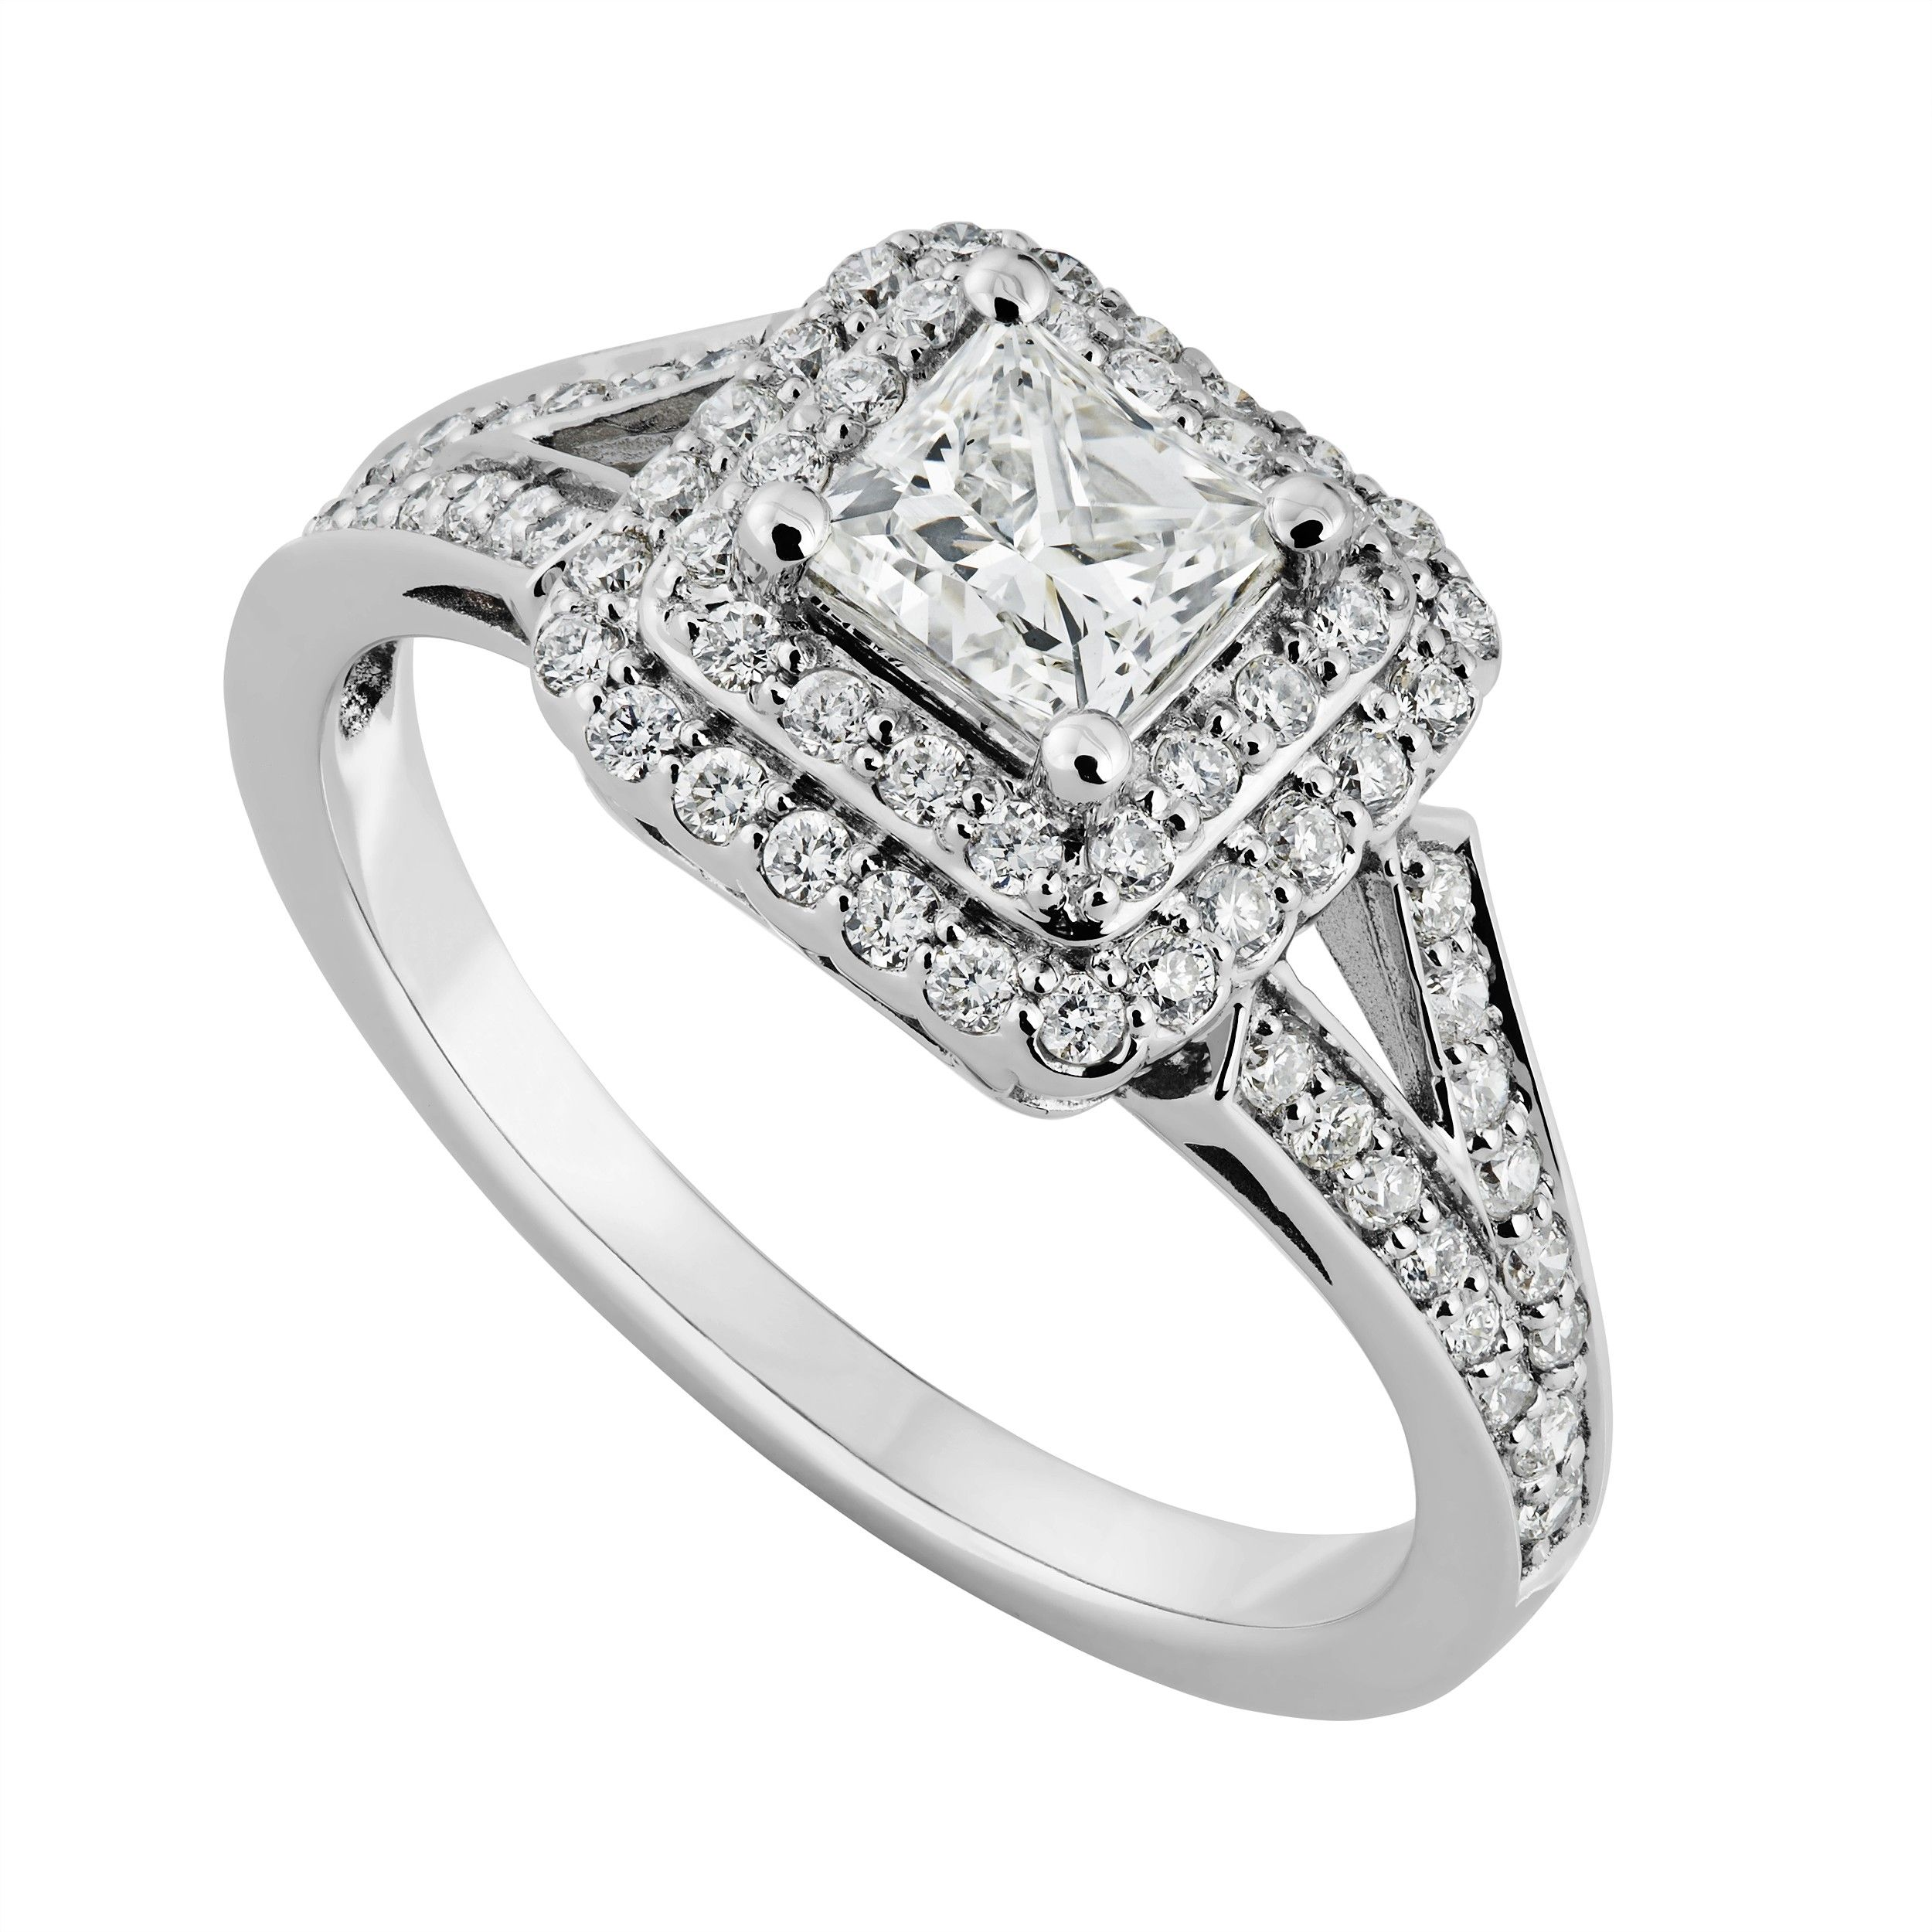 18ct white gold 0 85 carat princess cut diamond ring